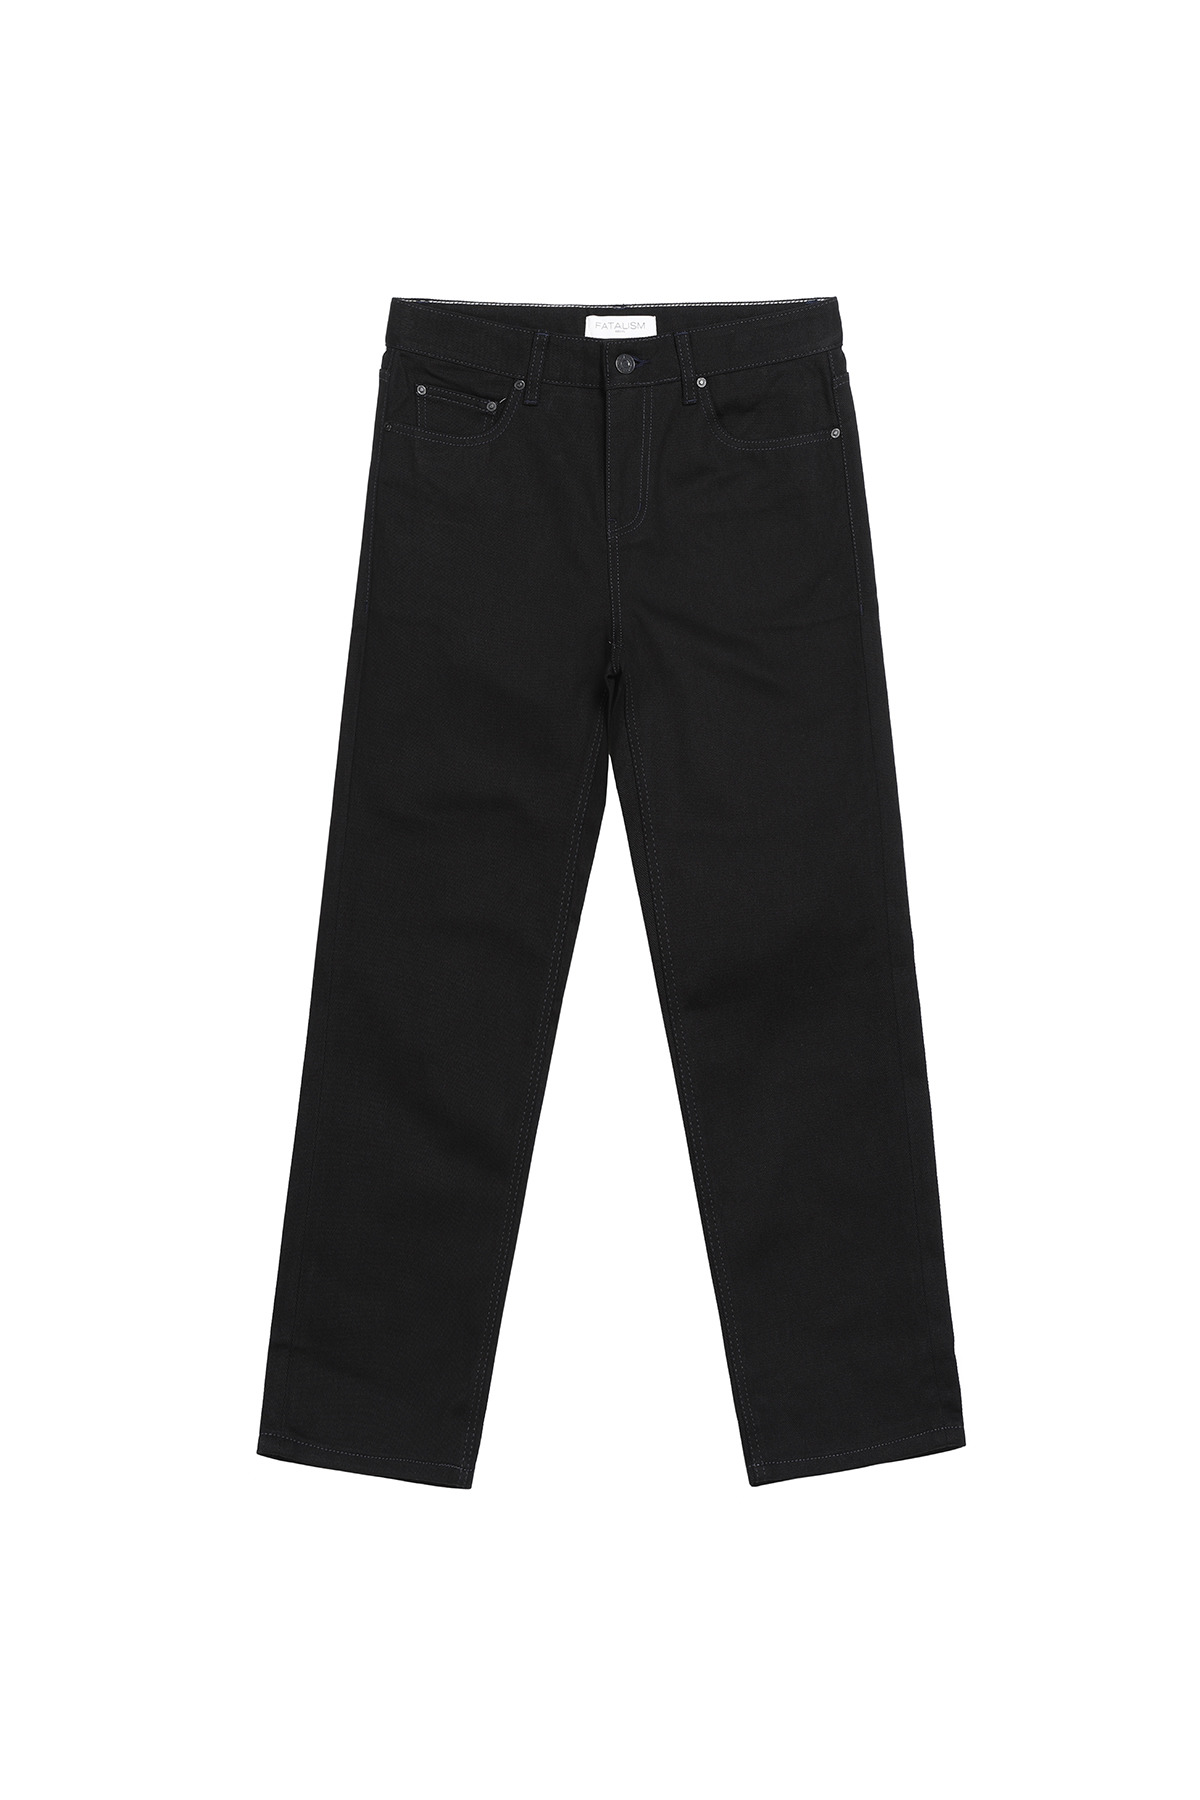 페이탈리즘 #0202 Matt black standard crop fit (navy stitch)